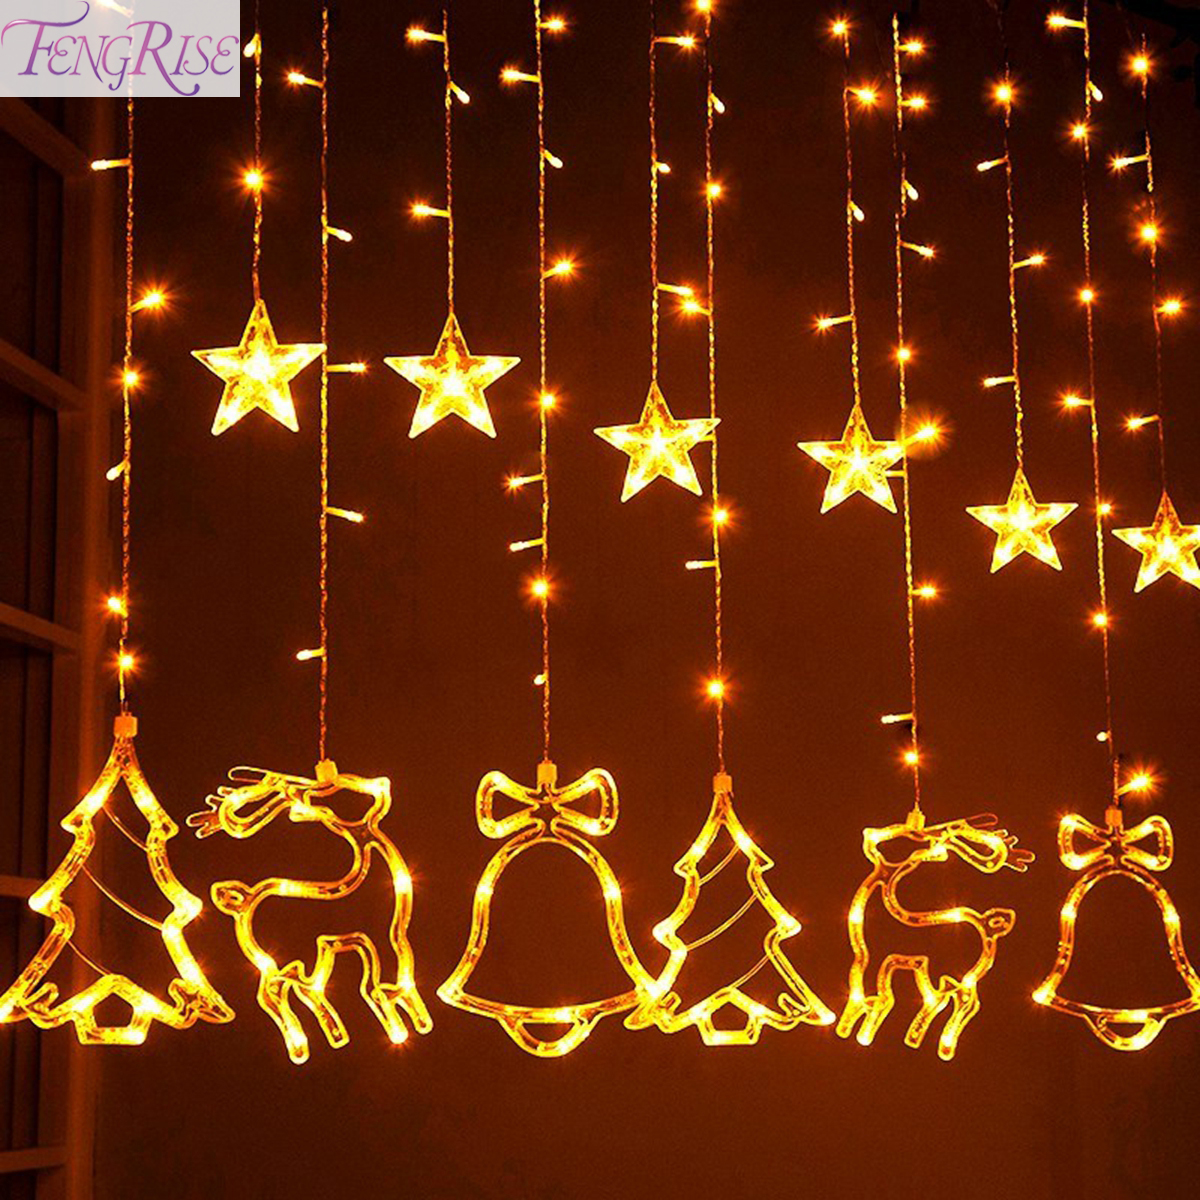 Led Christmas Light.Us 9 45 14 Off Fengrise Xmas Tree Ball Led Christmas Light Strings Merry Christmas Decorations For Home 2019 Noel Cristmas Decor New Year 2020 In